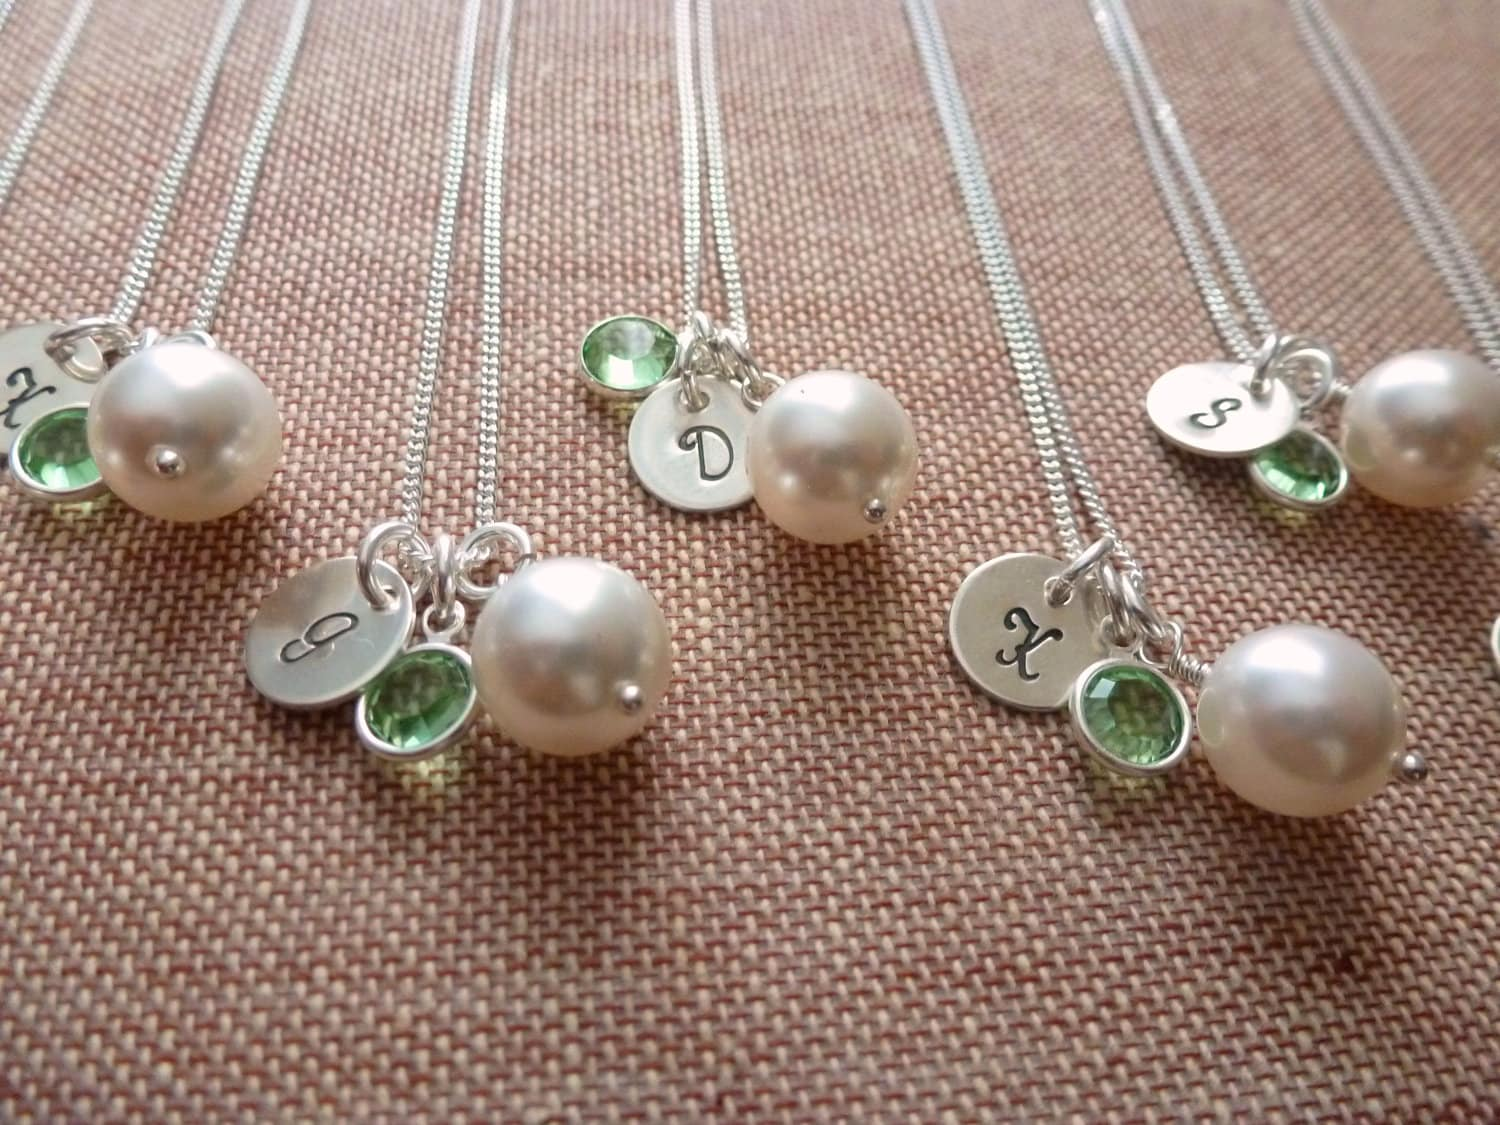 Wedding Gift Jewelry Suggestions : Bridesmaid Jewelry Need ideas, Post your pictures! - Weddingbee